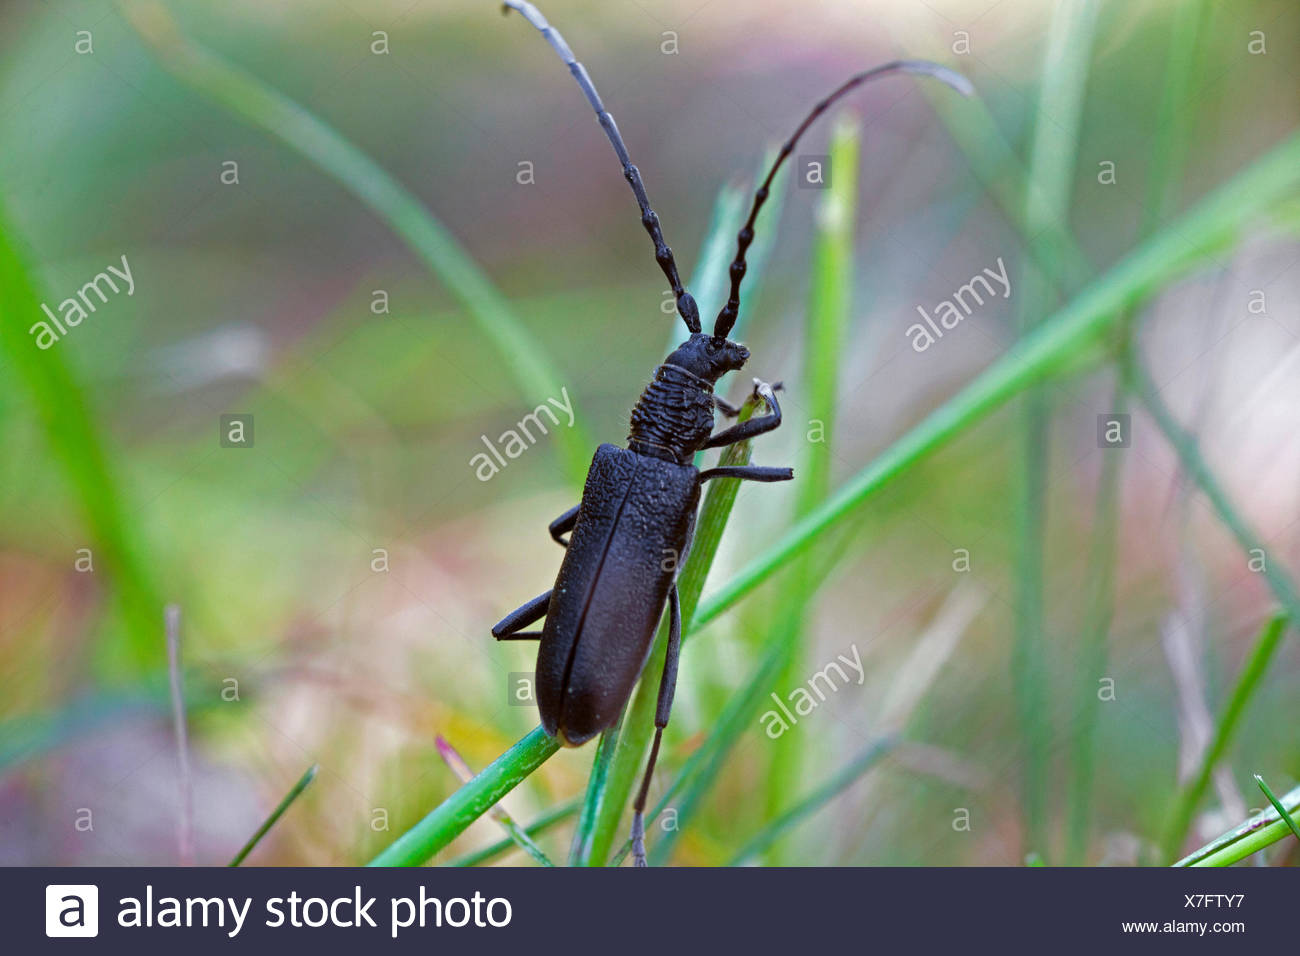 musk beetle (Aromia moschata), on blade of grass, Germany, Bavaria, NSG Maeusberg - Stock Image